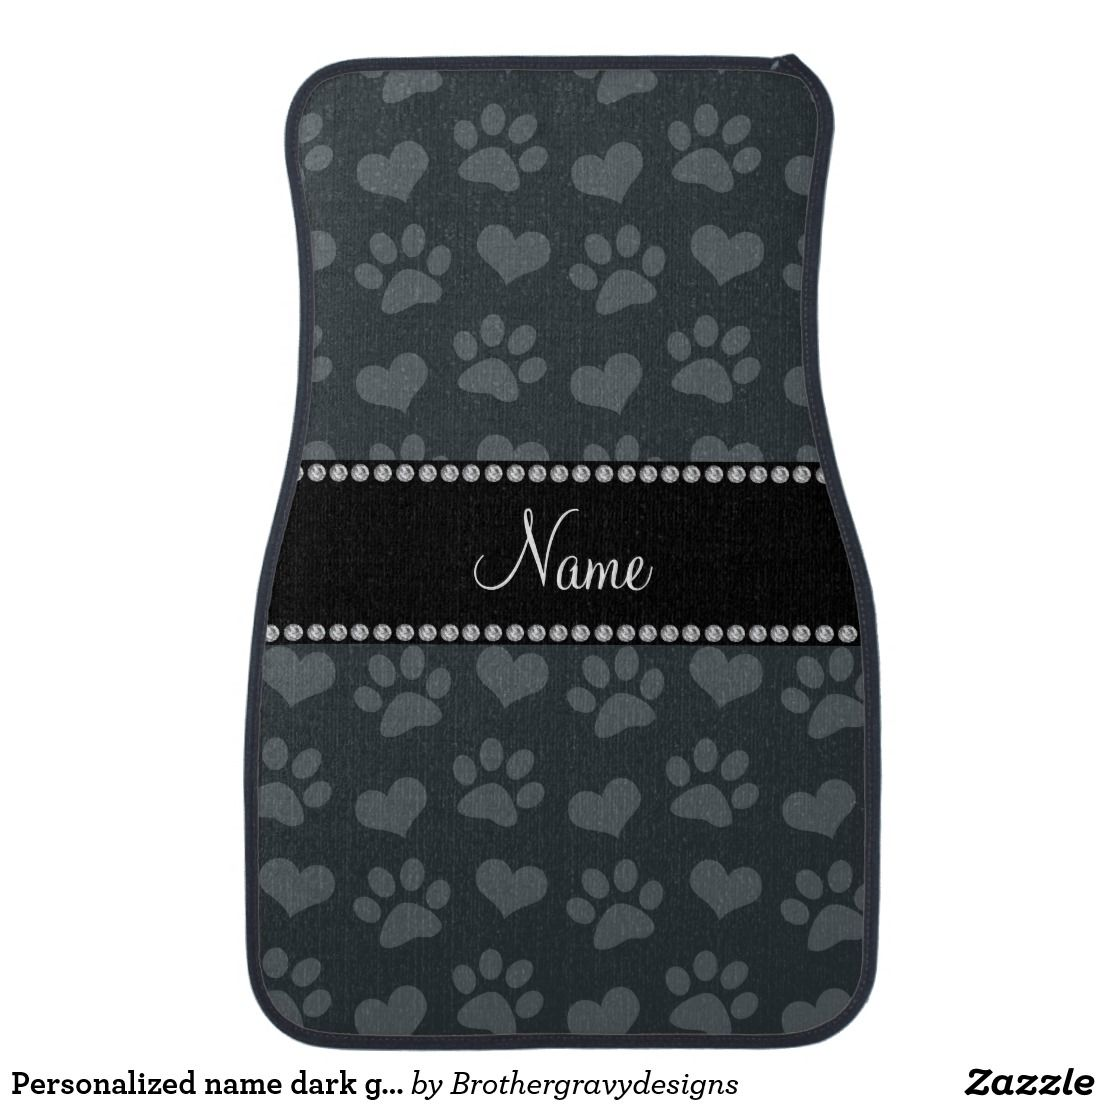 Personalized name dark gray hearts and paw prints car mat